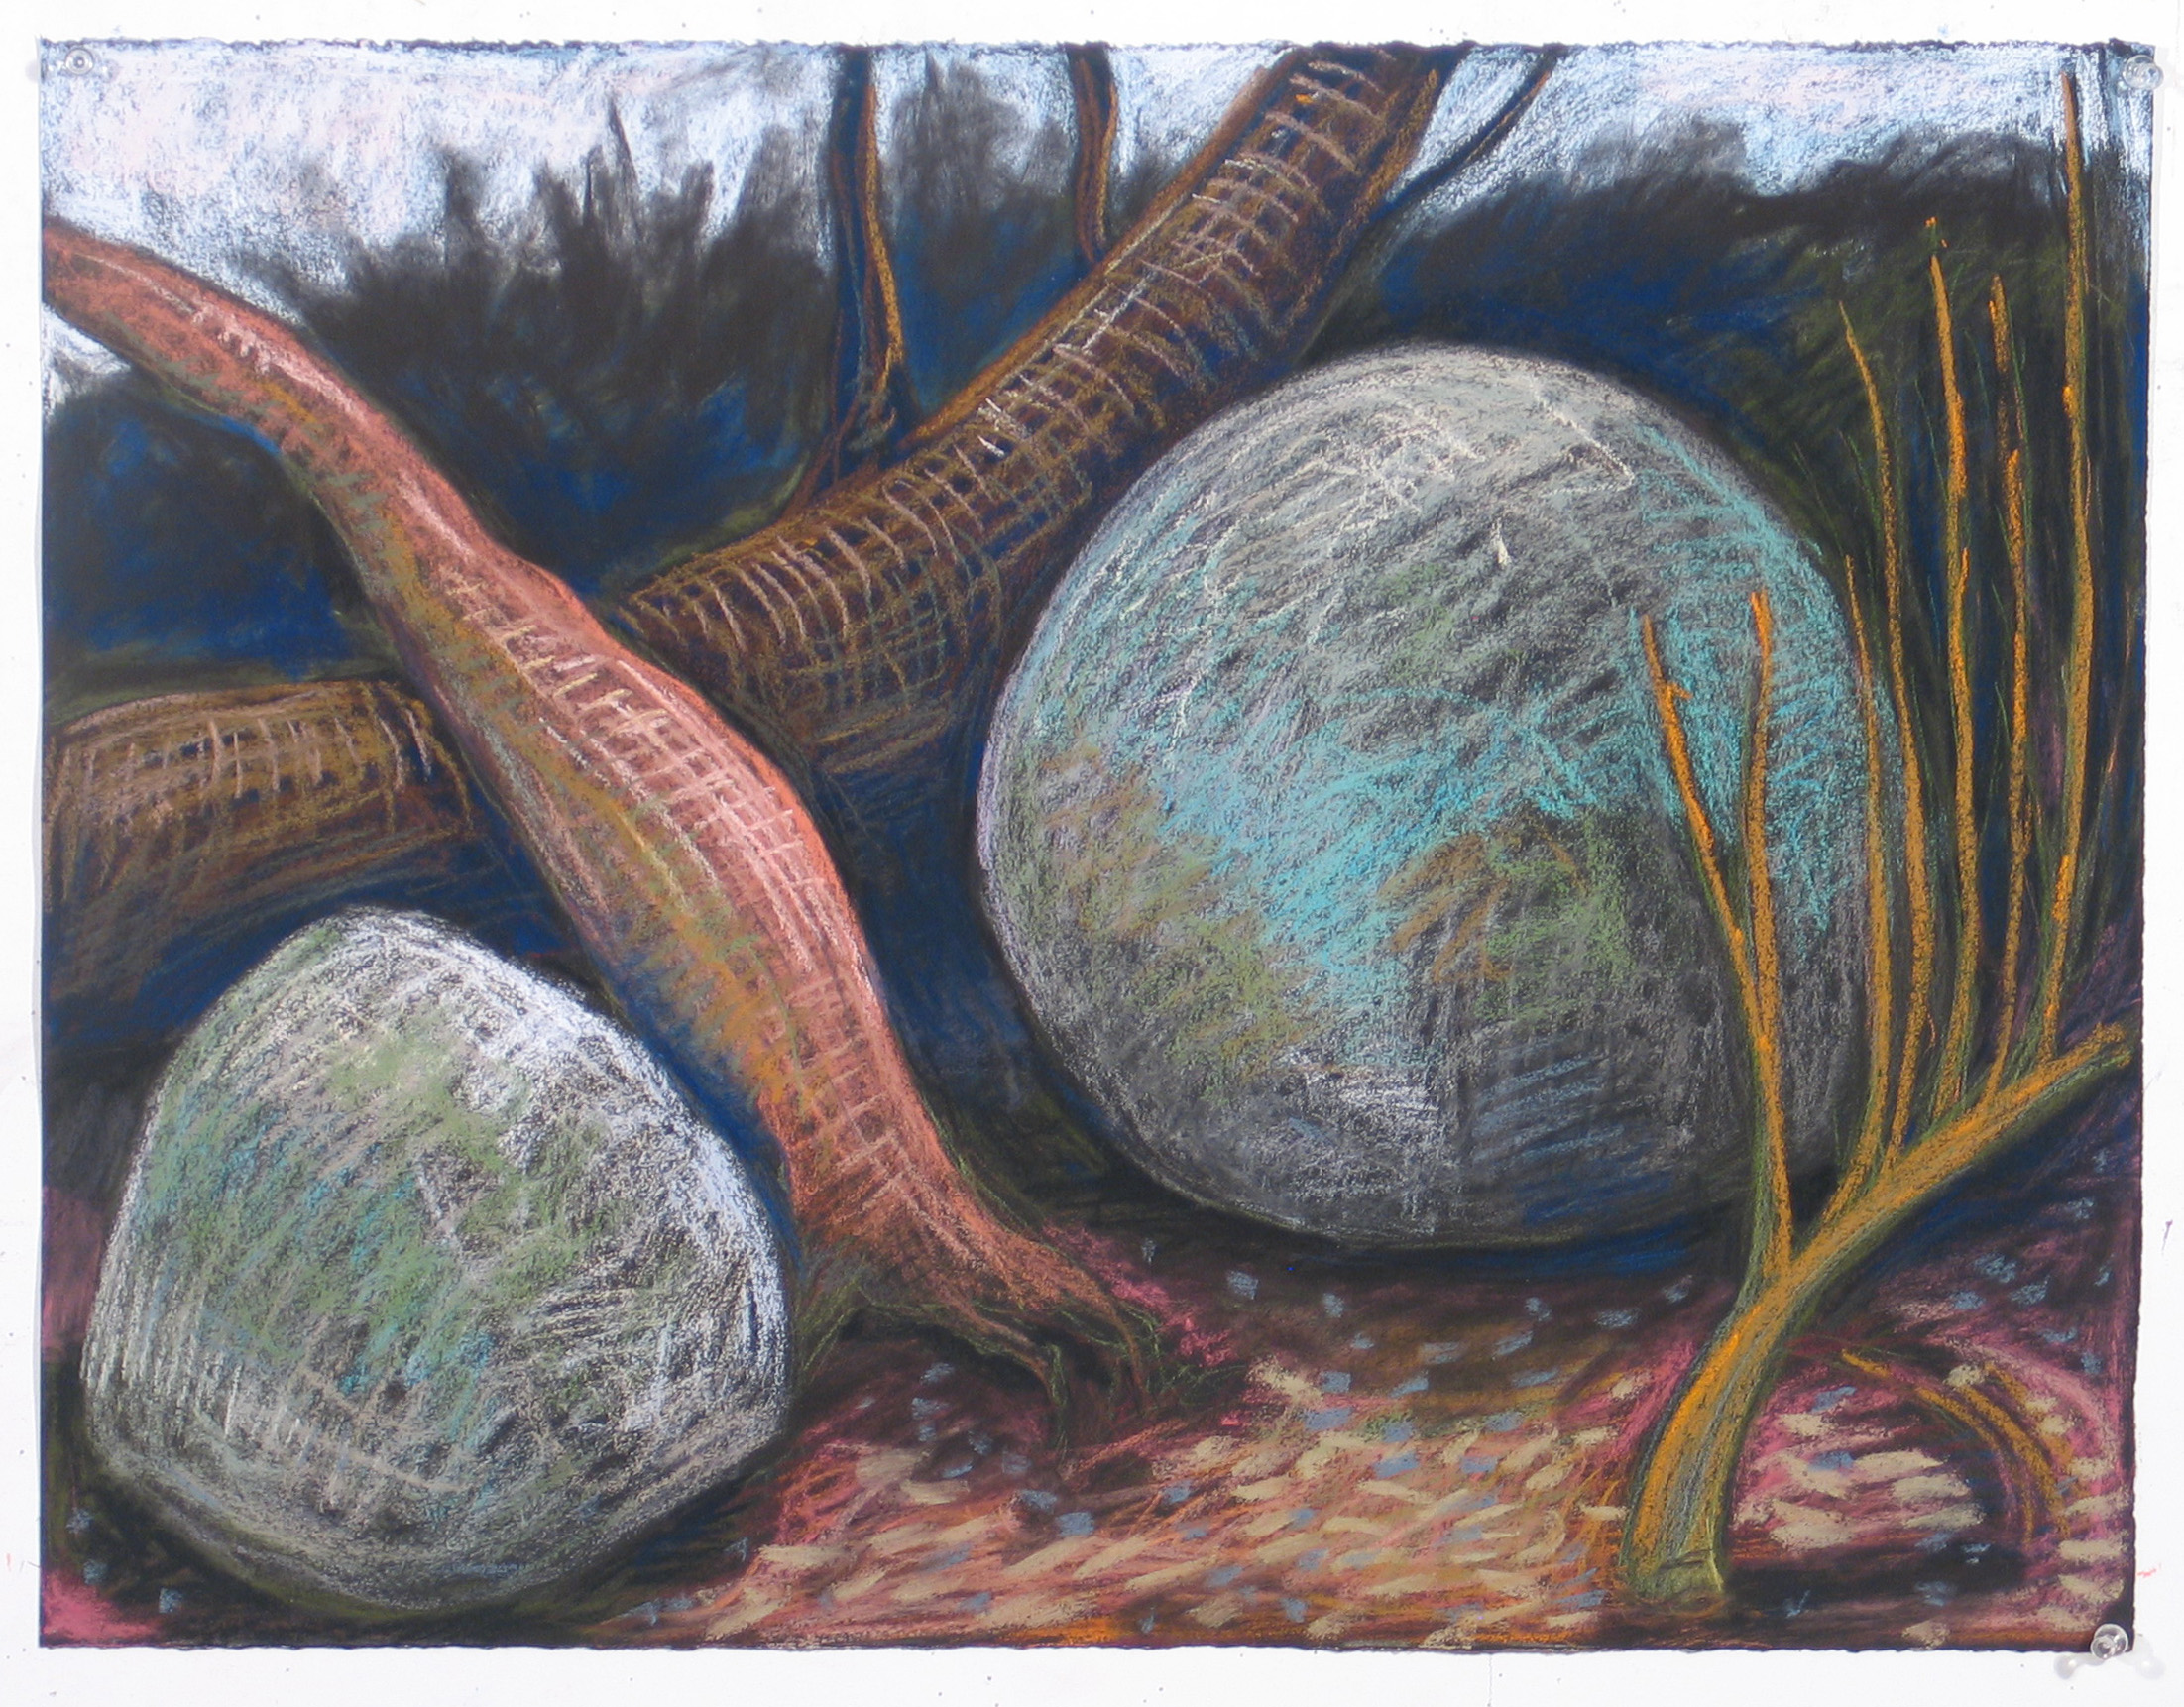 GBarzaghi . Rocks and Trees 2012 . Pastel on Stenhenge paper . 19x25 inches.JPG